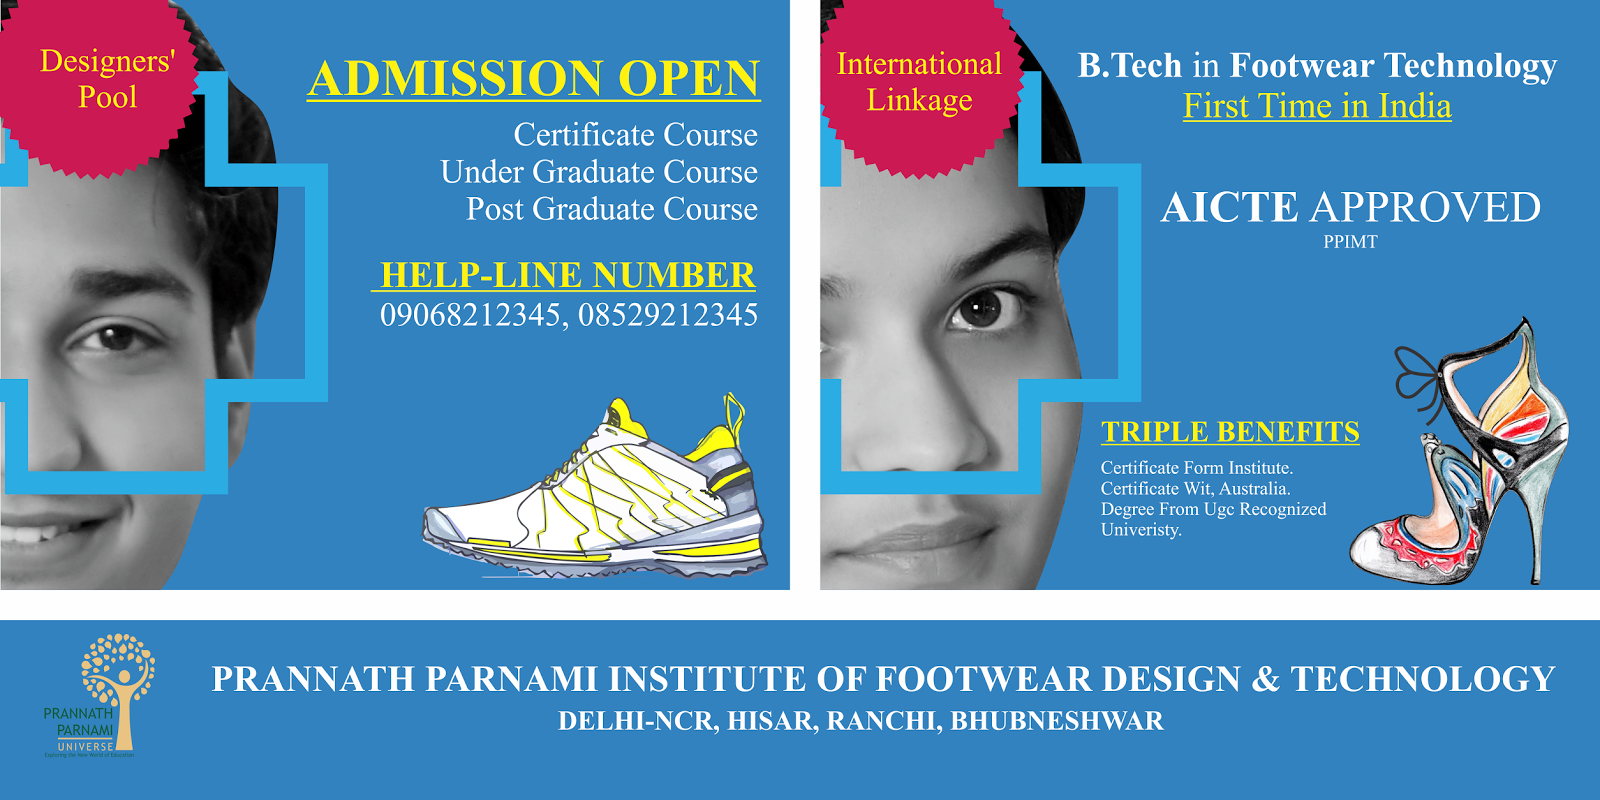 Banner Design Ideas aj banner bugs banner banner stand banner ideas roll up design work design design stuff print design art design 1st Option For College Banner Design With The Attractive Blue Color Scheme And Eye Catching Pic And Make A Great Concept Design For Our Client Prannath